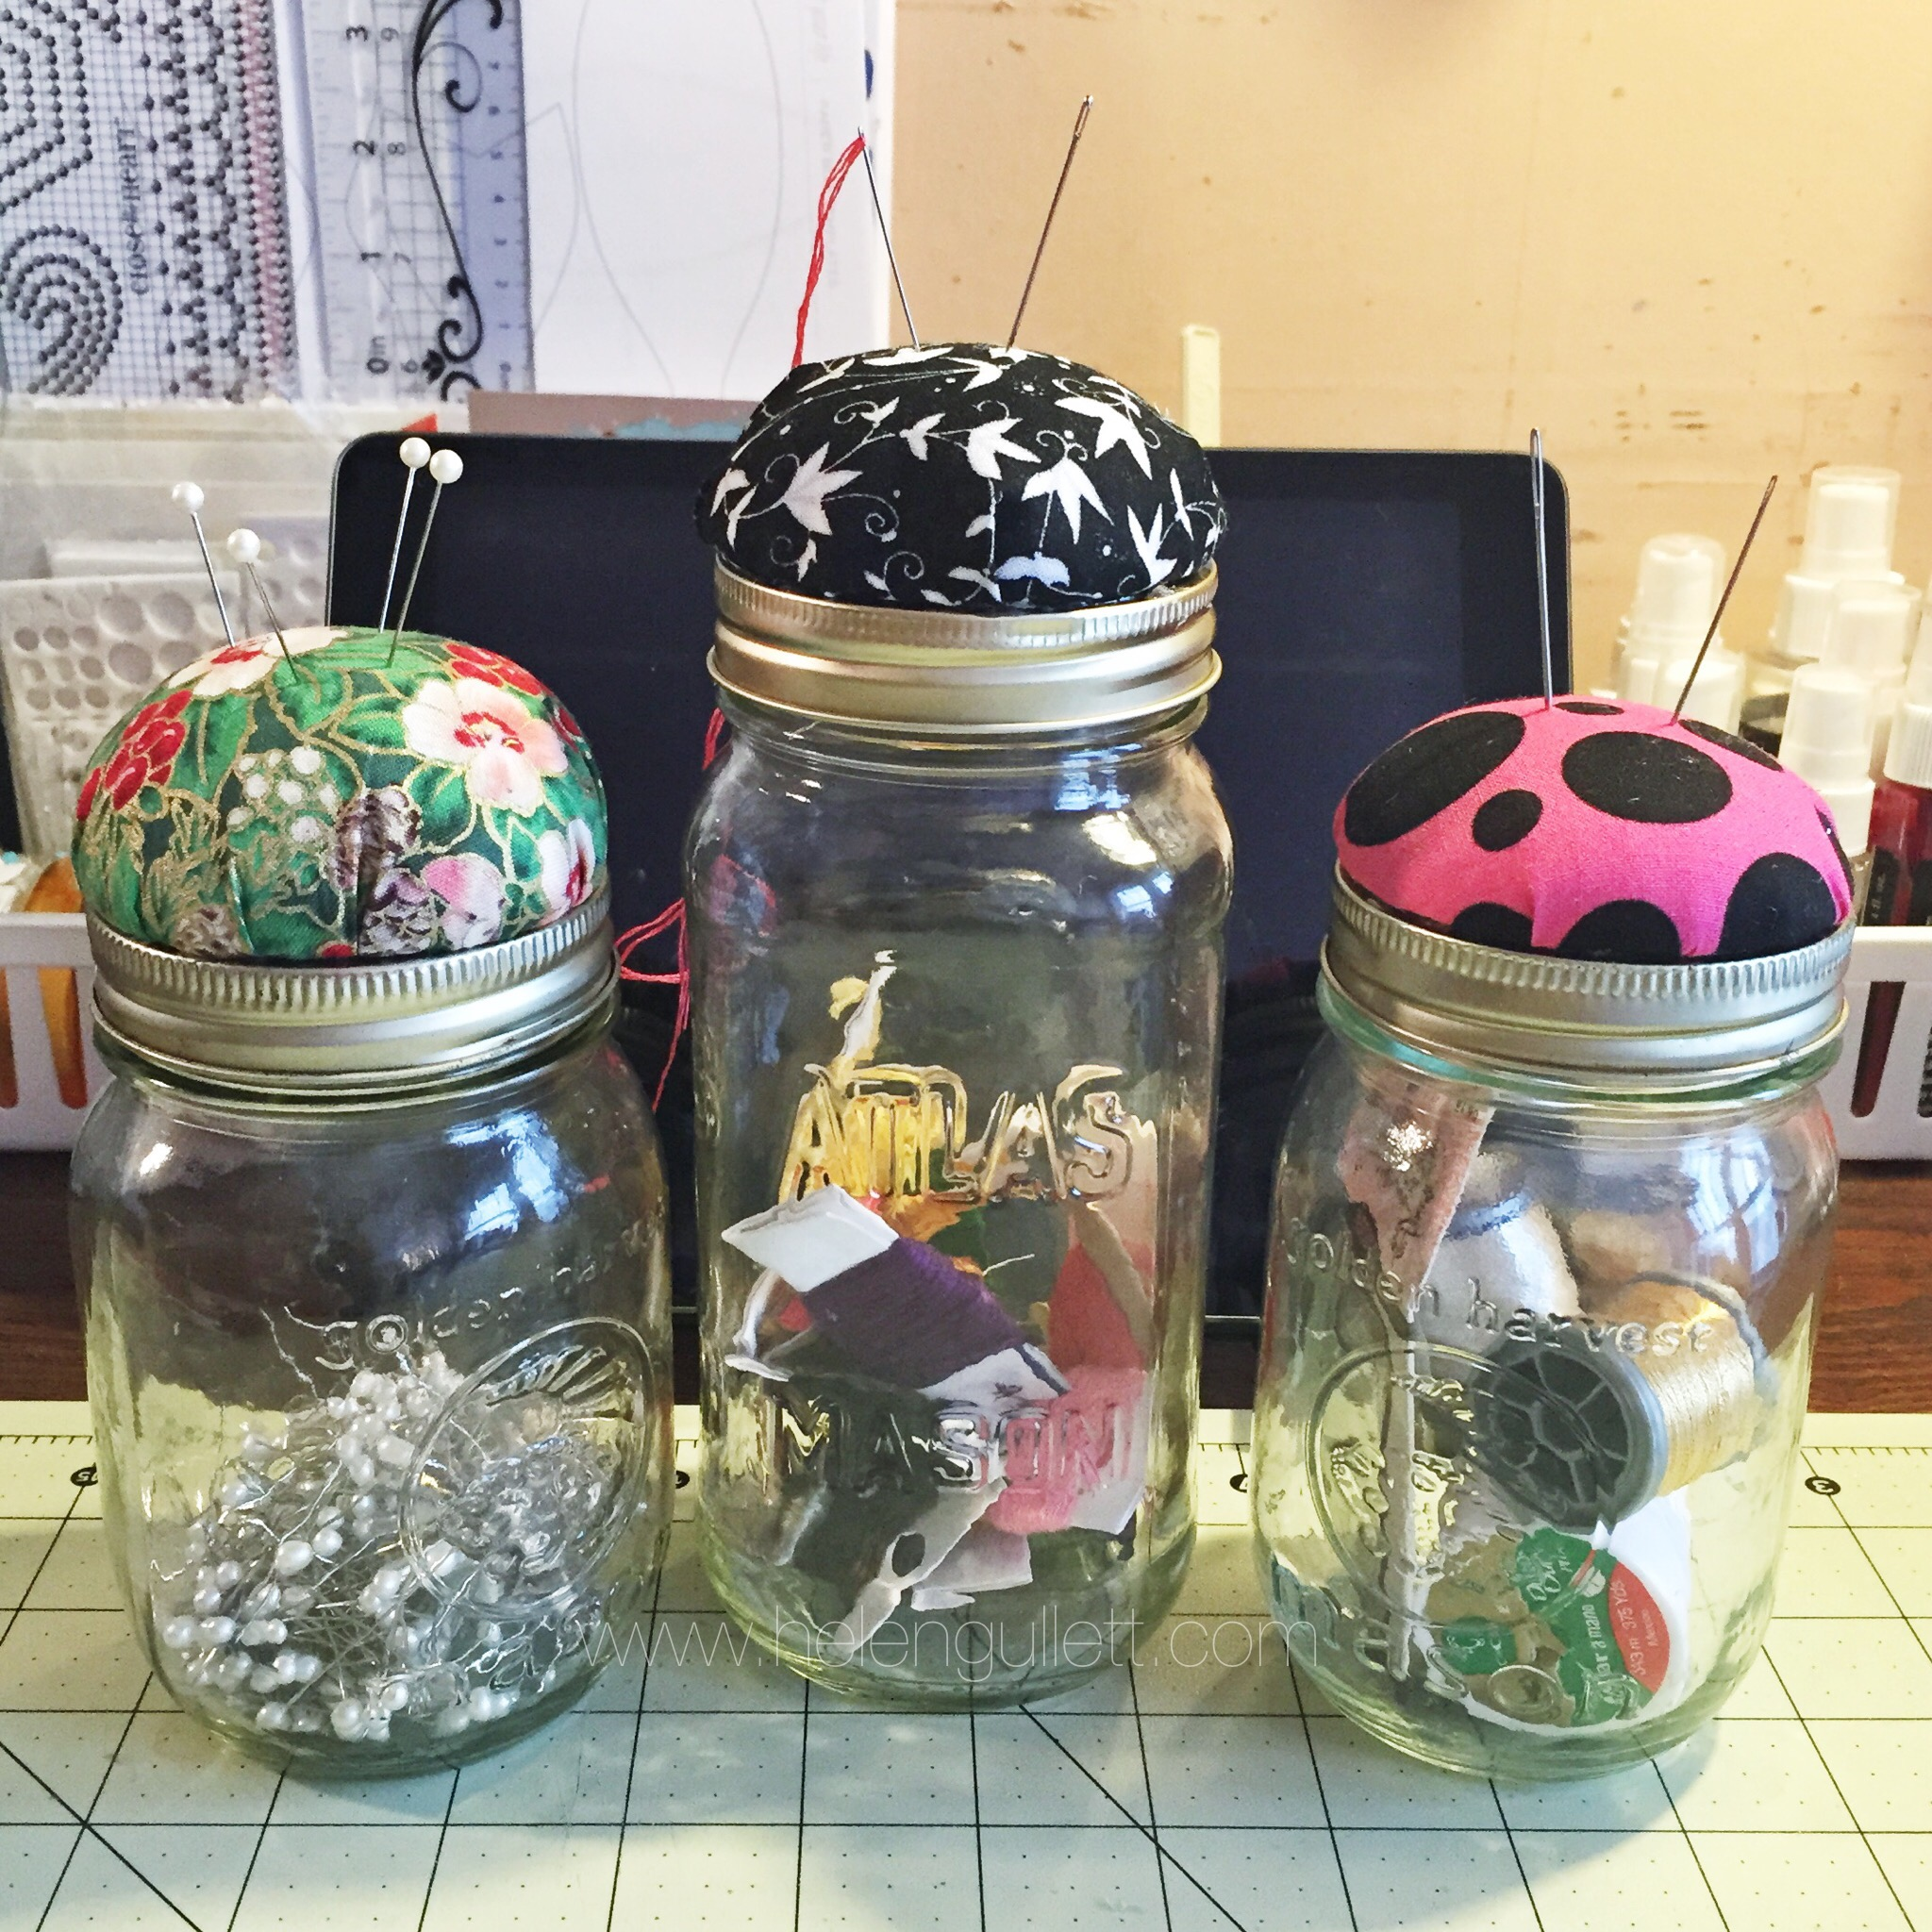 Pin/Needle Cushion Mason Jars by Helen Gullett http://helengullet.com